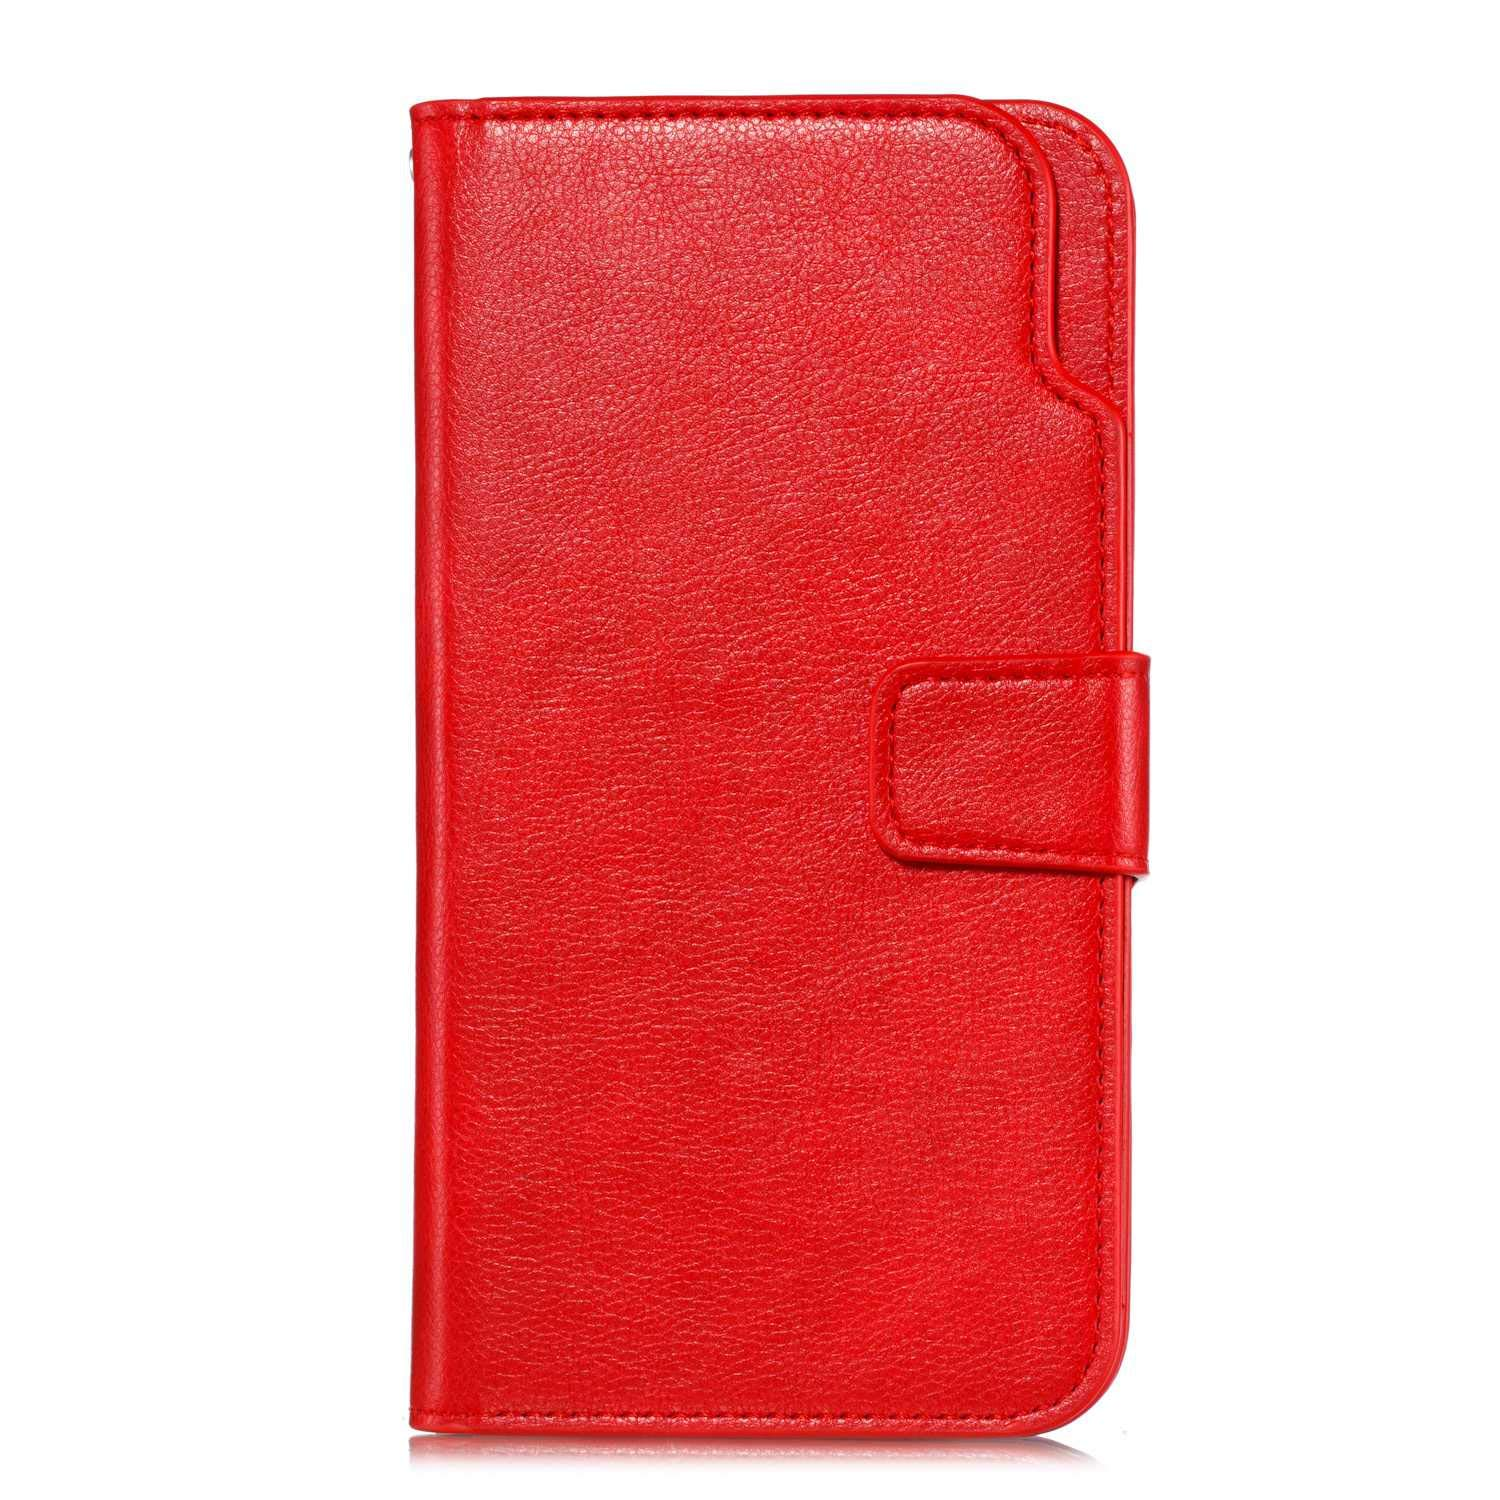 UNEXTATI Galaxy J8 2018 Wallet Case, Leather Folding Flip Case with 9 Card Holder, Classic Design Protective Cover Bumper Case for Samsung Galaxy J8 2018 (Red #4)